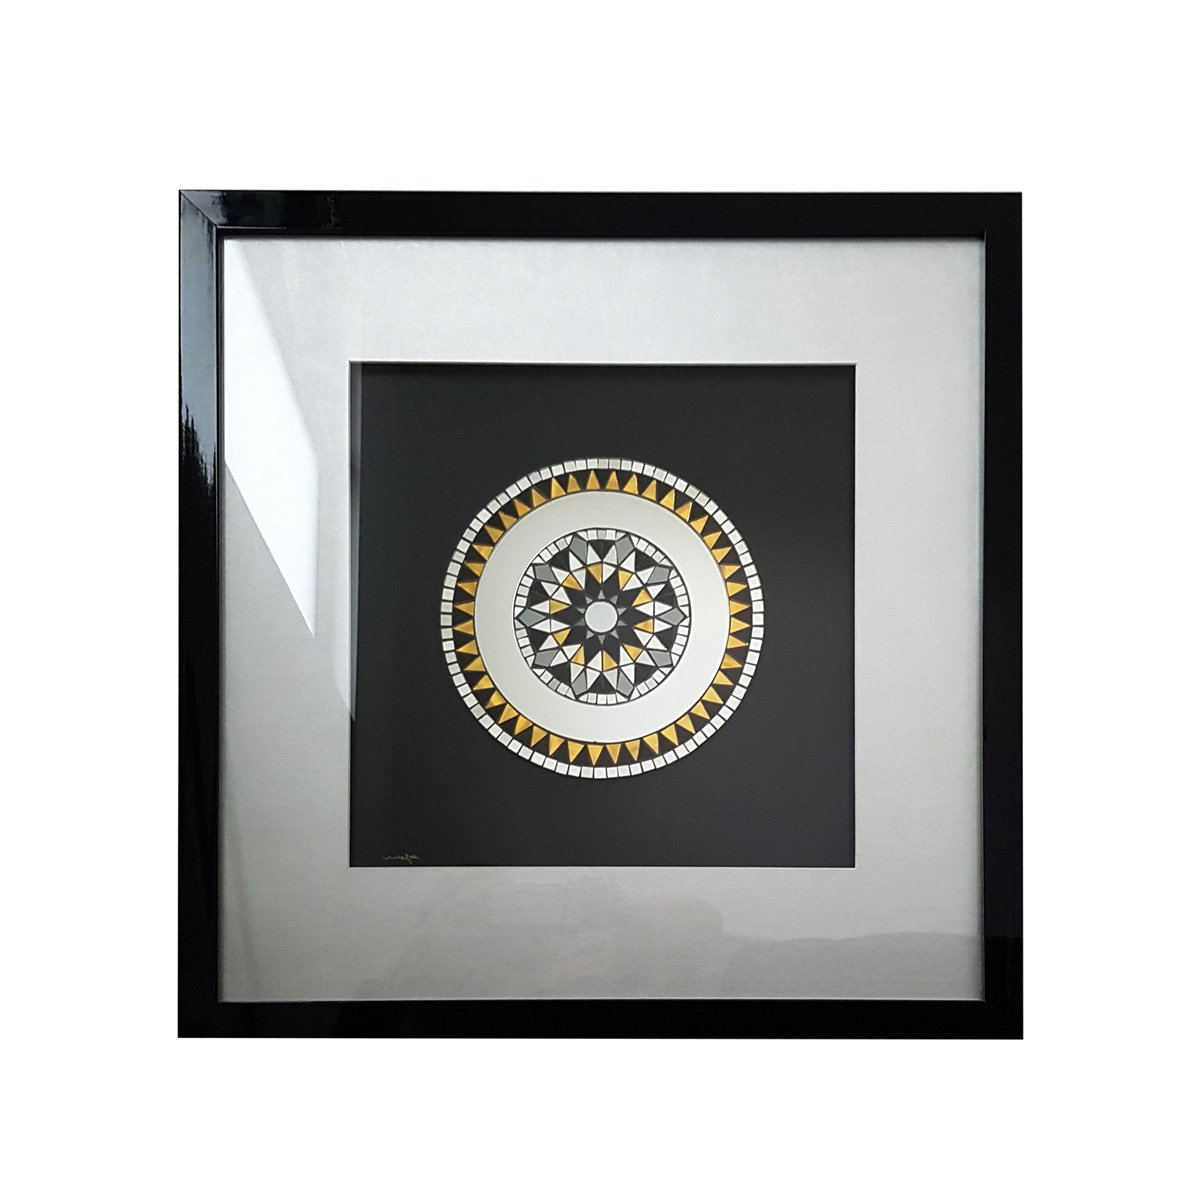 """""""sol And Luna"""" Handmade Mosaic Framed Wall Artmirror Envy 60Cm With Regard To Most Up To Date Mosaic Framed Wall Mirrors (View 19 of 20)"""